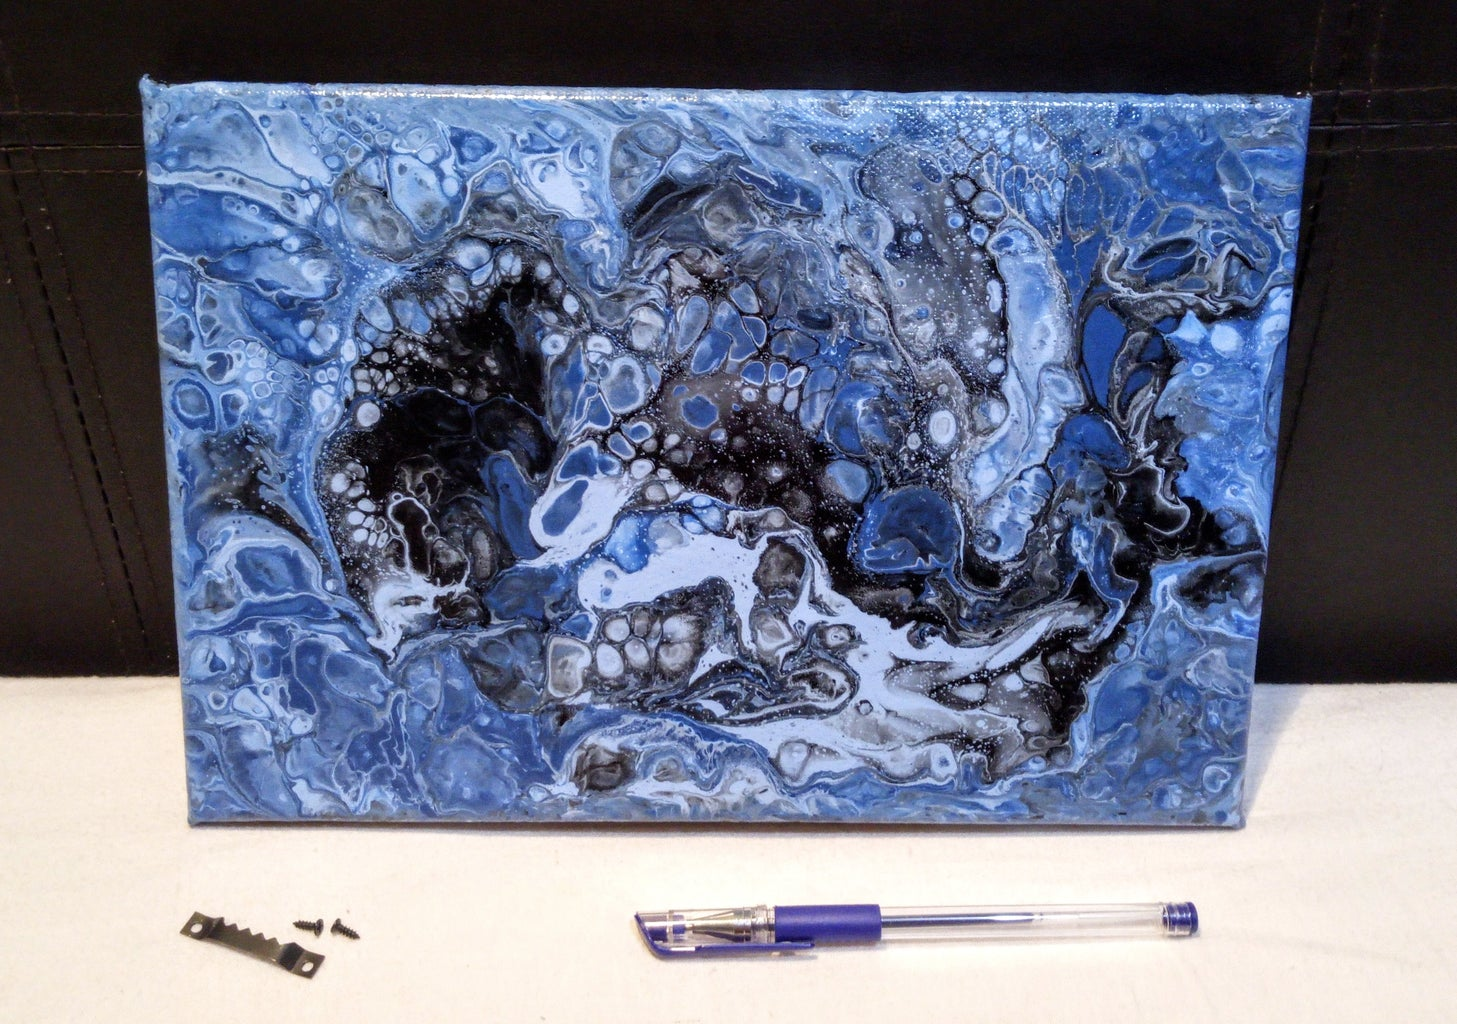 Acrylic Pour Painting - on a Budget